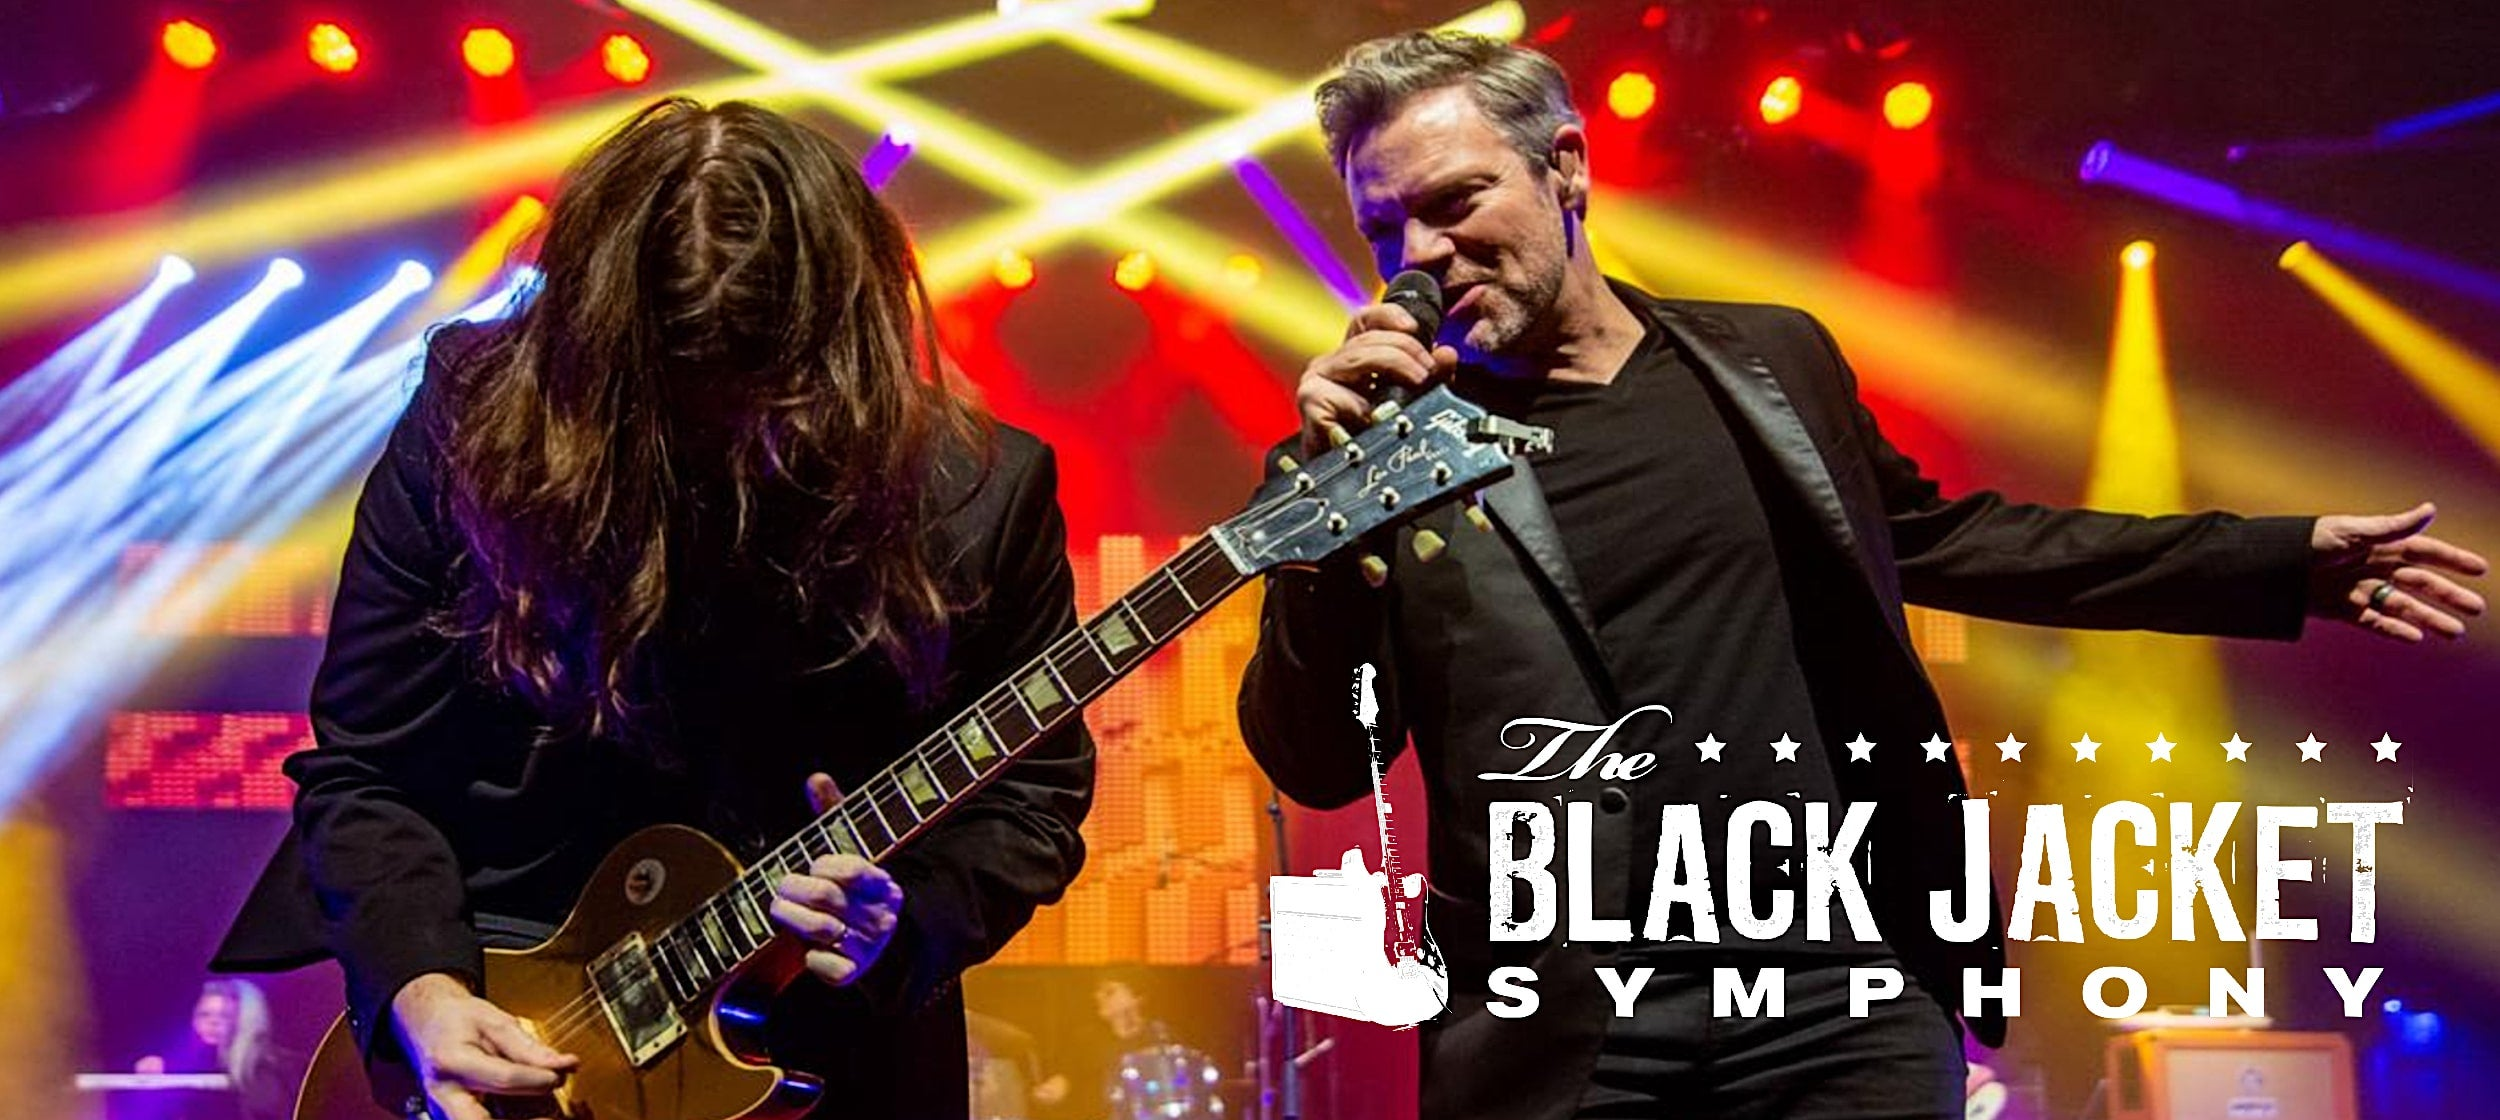 Black Jacket Symphony Presents Led Zeppelin IV